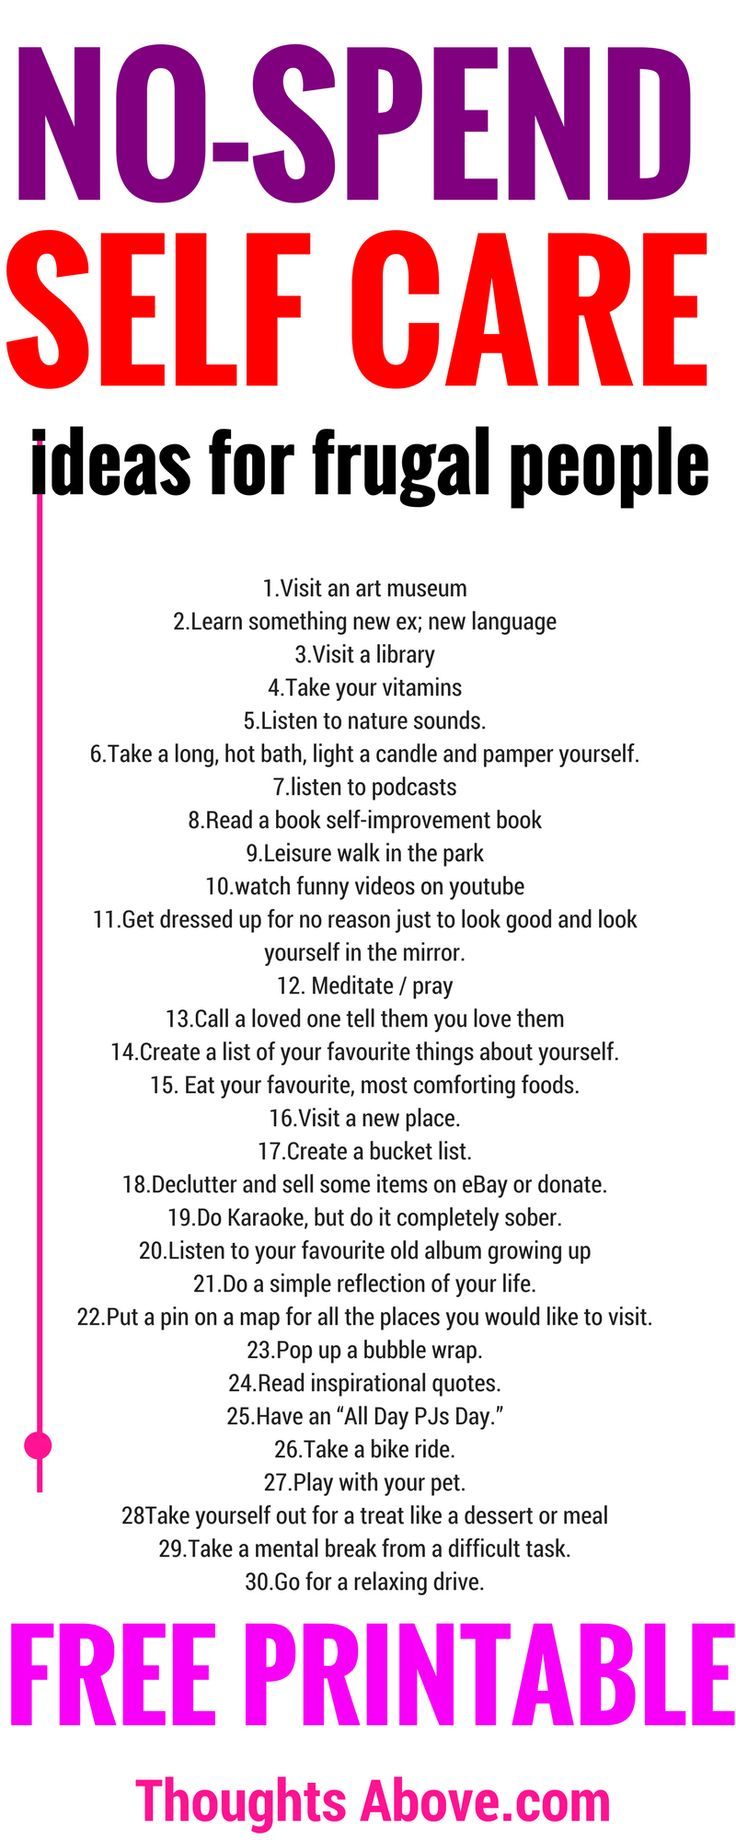 What an impressive! List of self-care ideas. budget-friendly and straightforward, I just pinned this for future reference. Just click to see. Self-care ideas| Self-care checklist| Self-care tips| Self-care Activities and routine. Self-improvement ,productivity